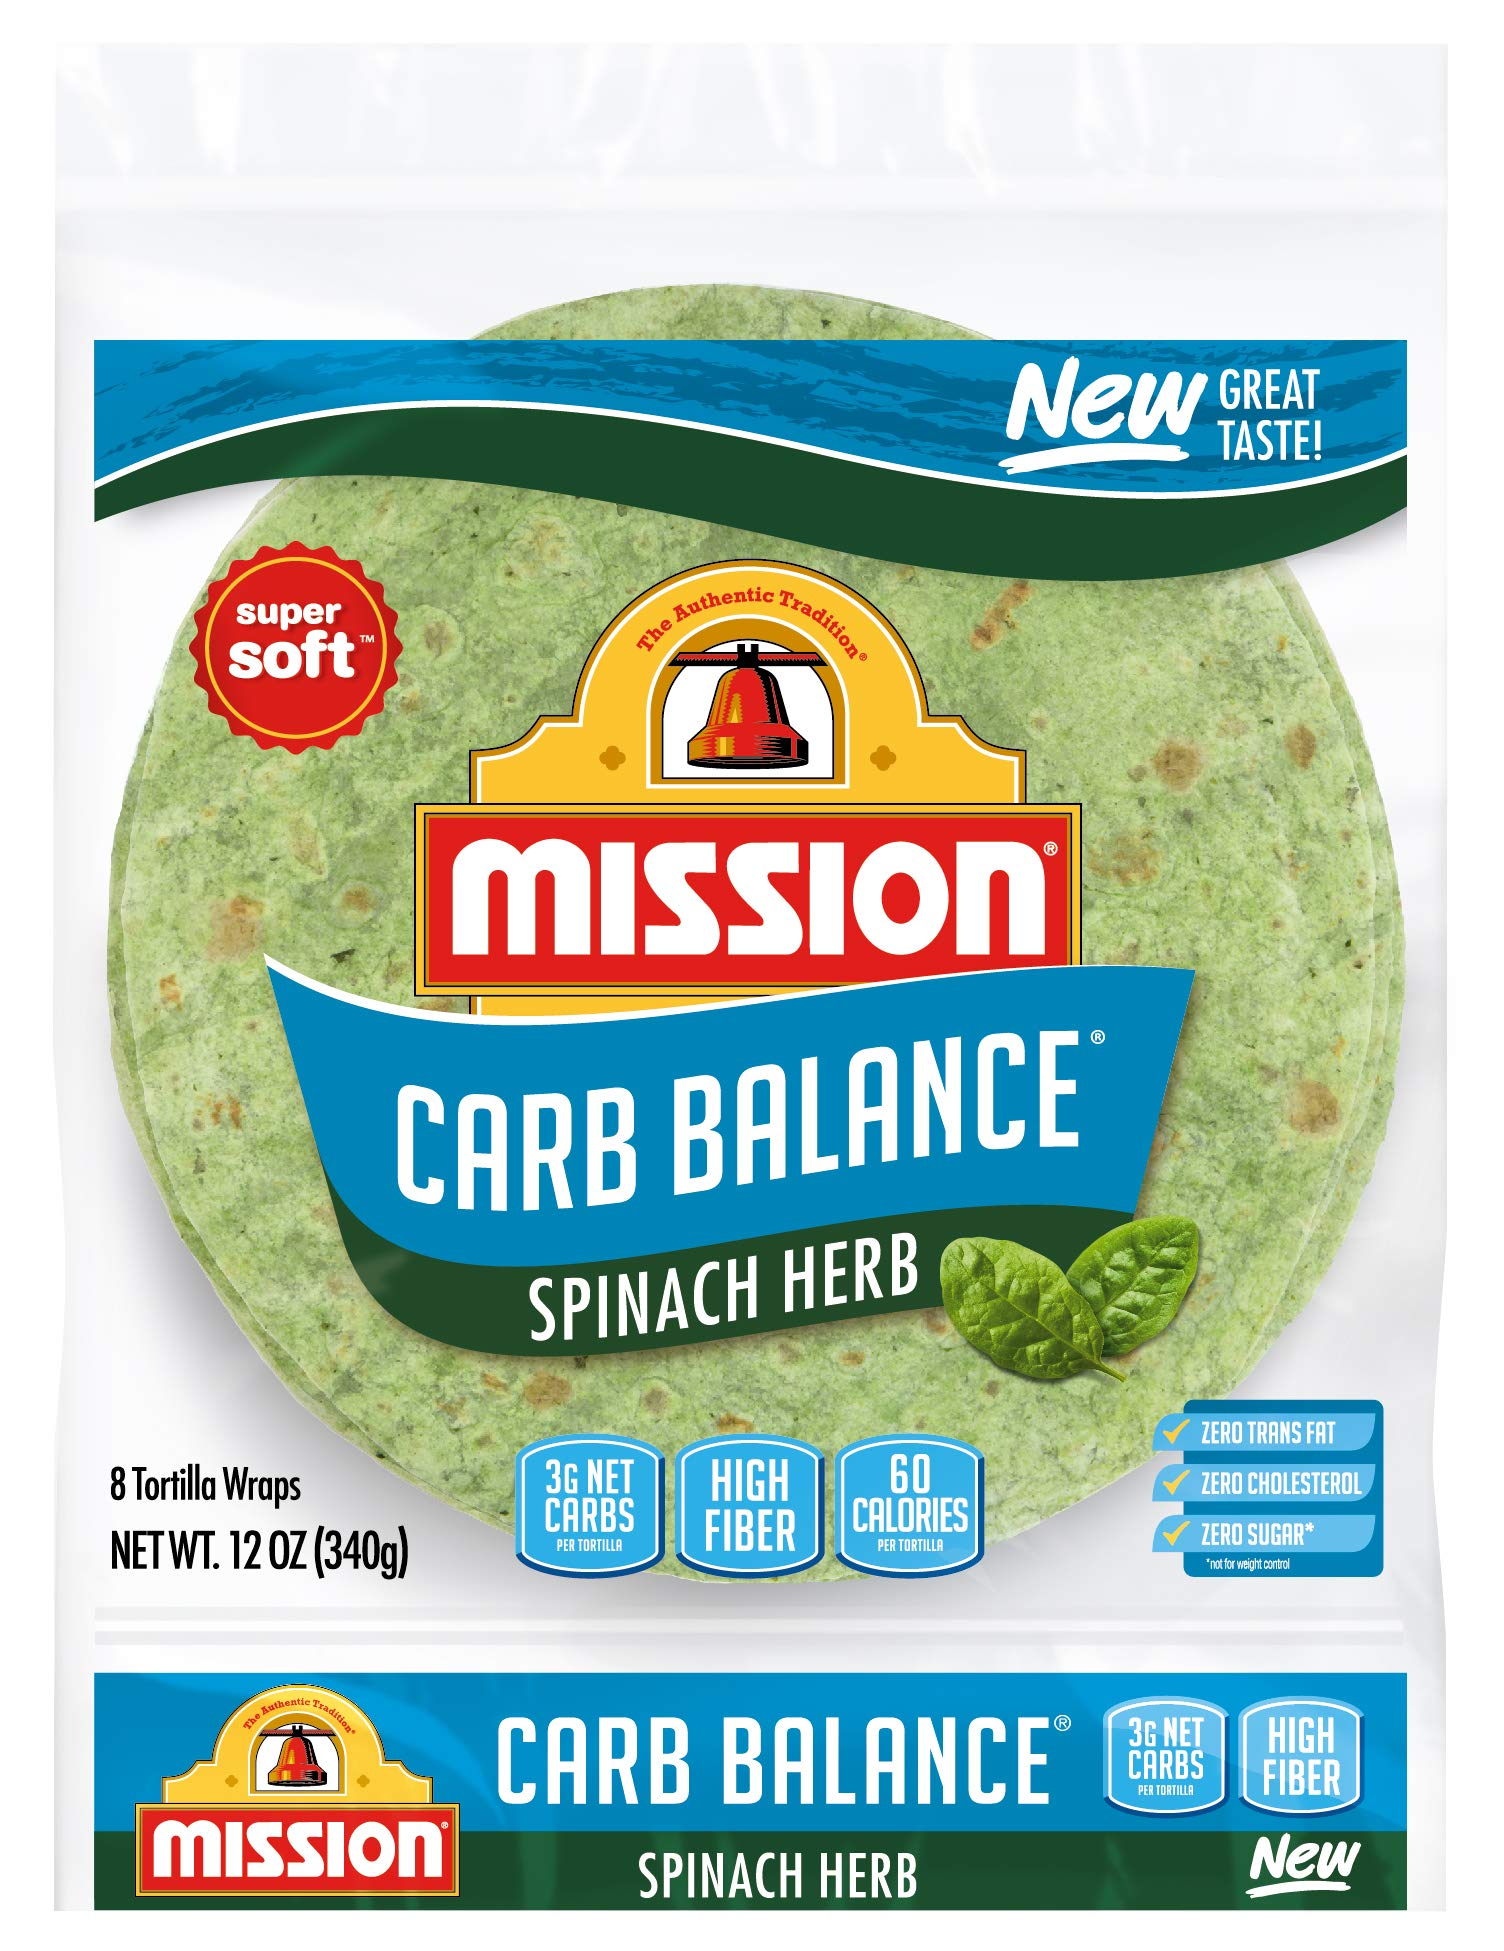 Mission Carb Balance Spinach Herb Tortilla Wraps, Low Carb, Keto, High Fiber, No Sugar, 8 Count